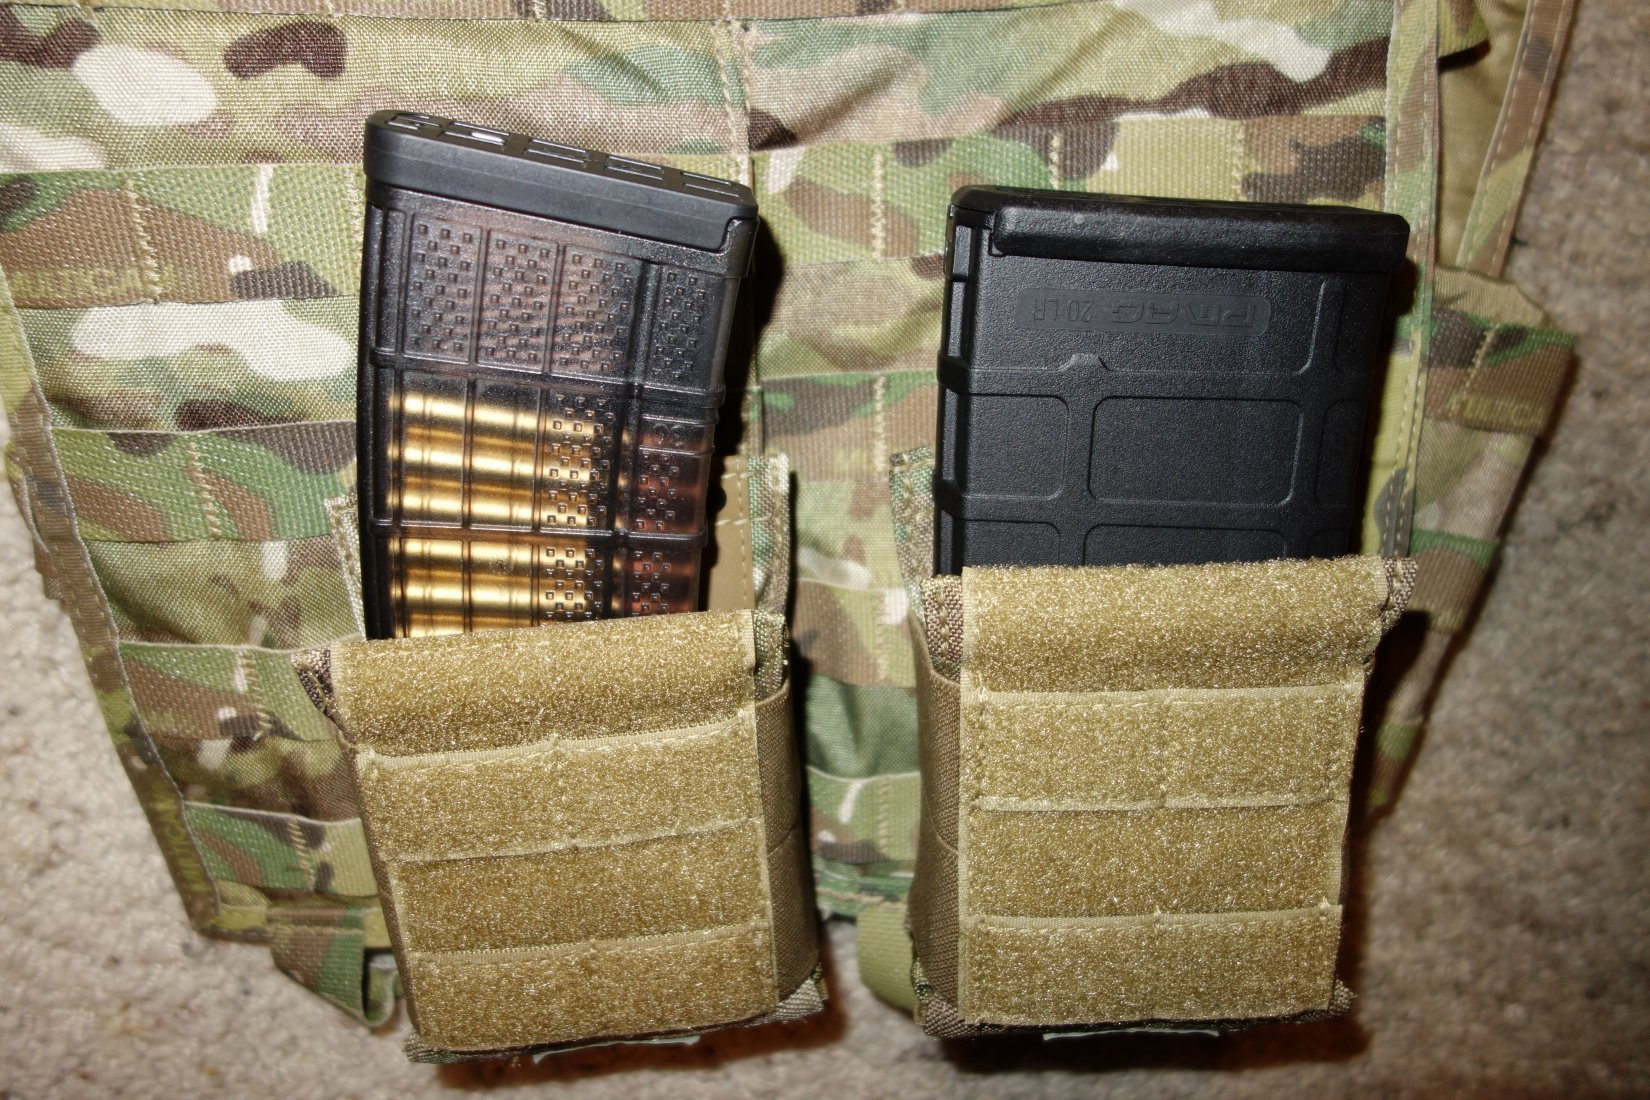 Hard Point Equipment Universal Mag Carrier UMC Universal Magazine Carrier Mag Pouch for Tactical Body Armor Carriers and Battle Belts David Crane DefenseReview.com DR 8 Tired of Tacos? Load Your Tactical Vest (Armor Plate Carrier) with the Hard Point Universal Mag Carrier (UMC): One Modular Magazine Pouch Handles 5.56mm and 7.62mm Rifle Magazines and Pistol Mags